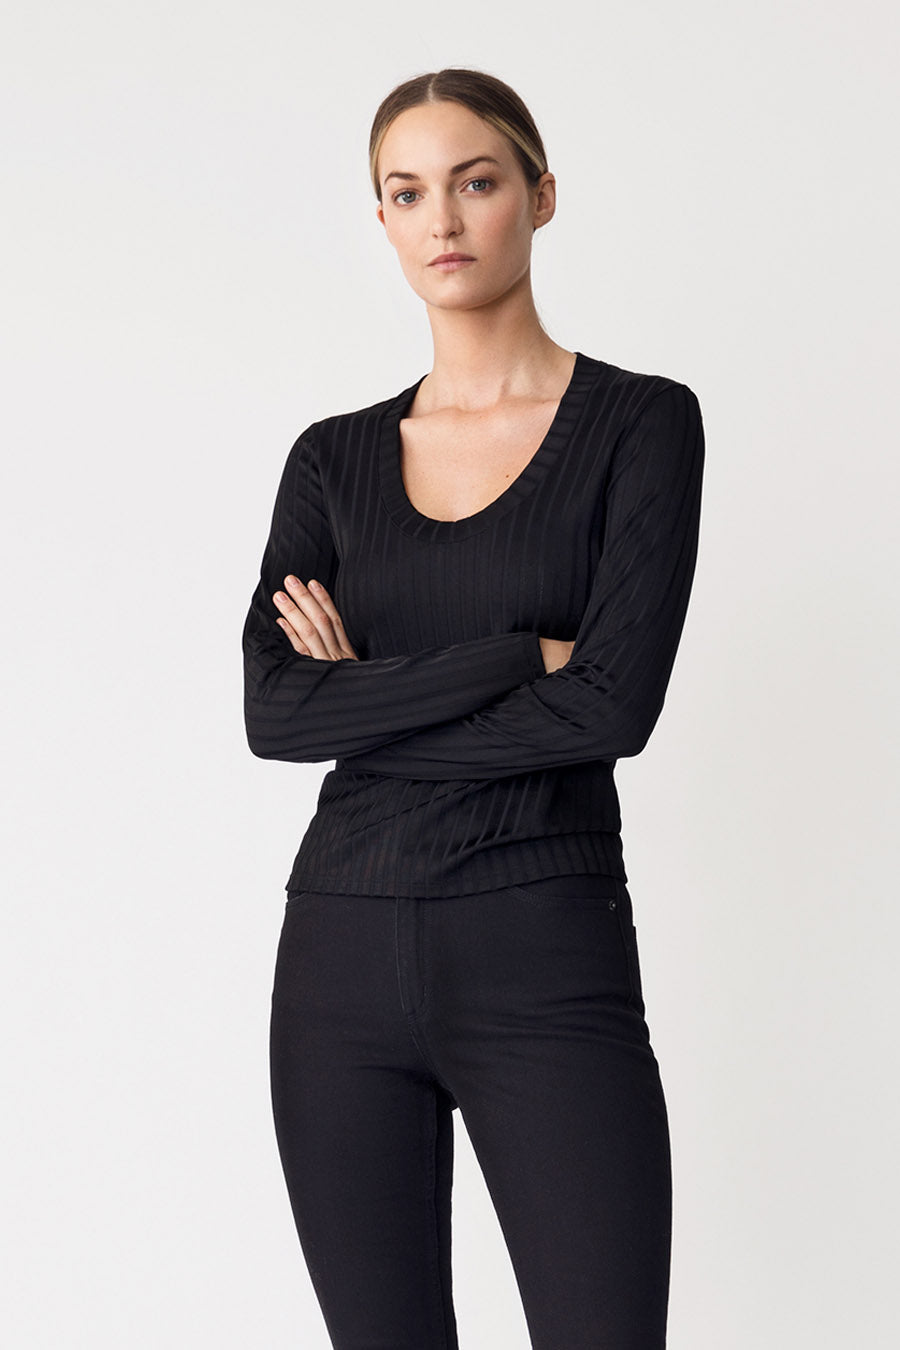 PETRONELLA TOP - BLACK